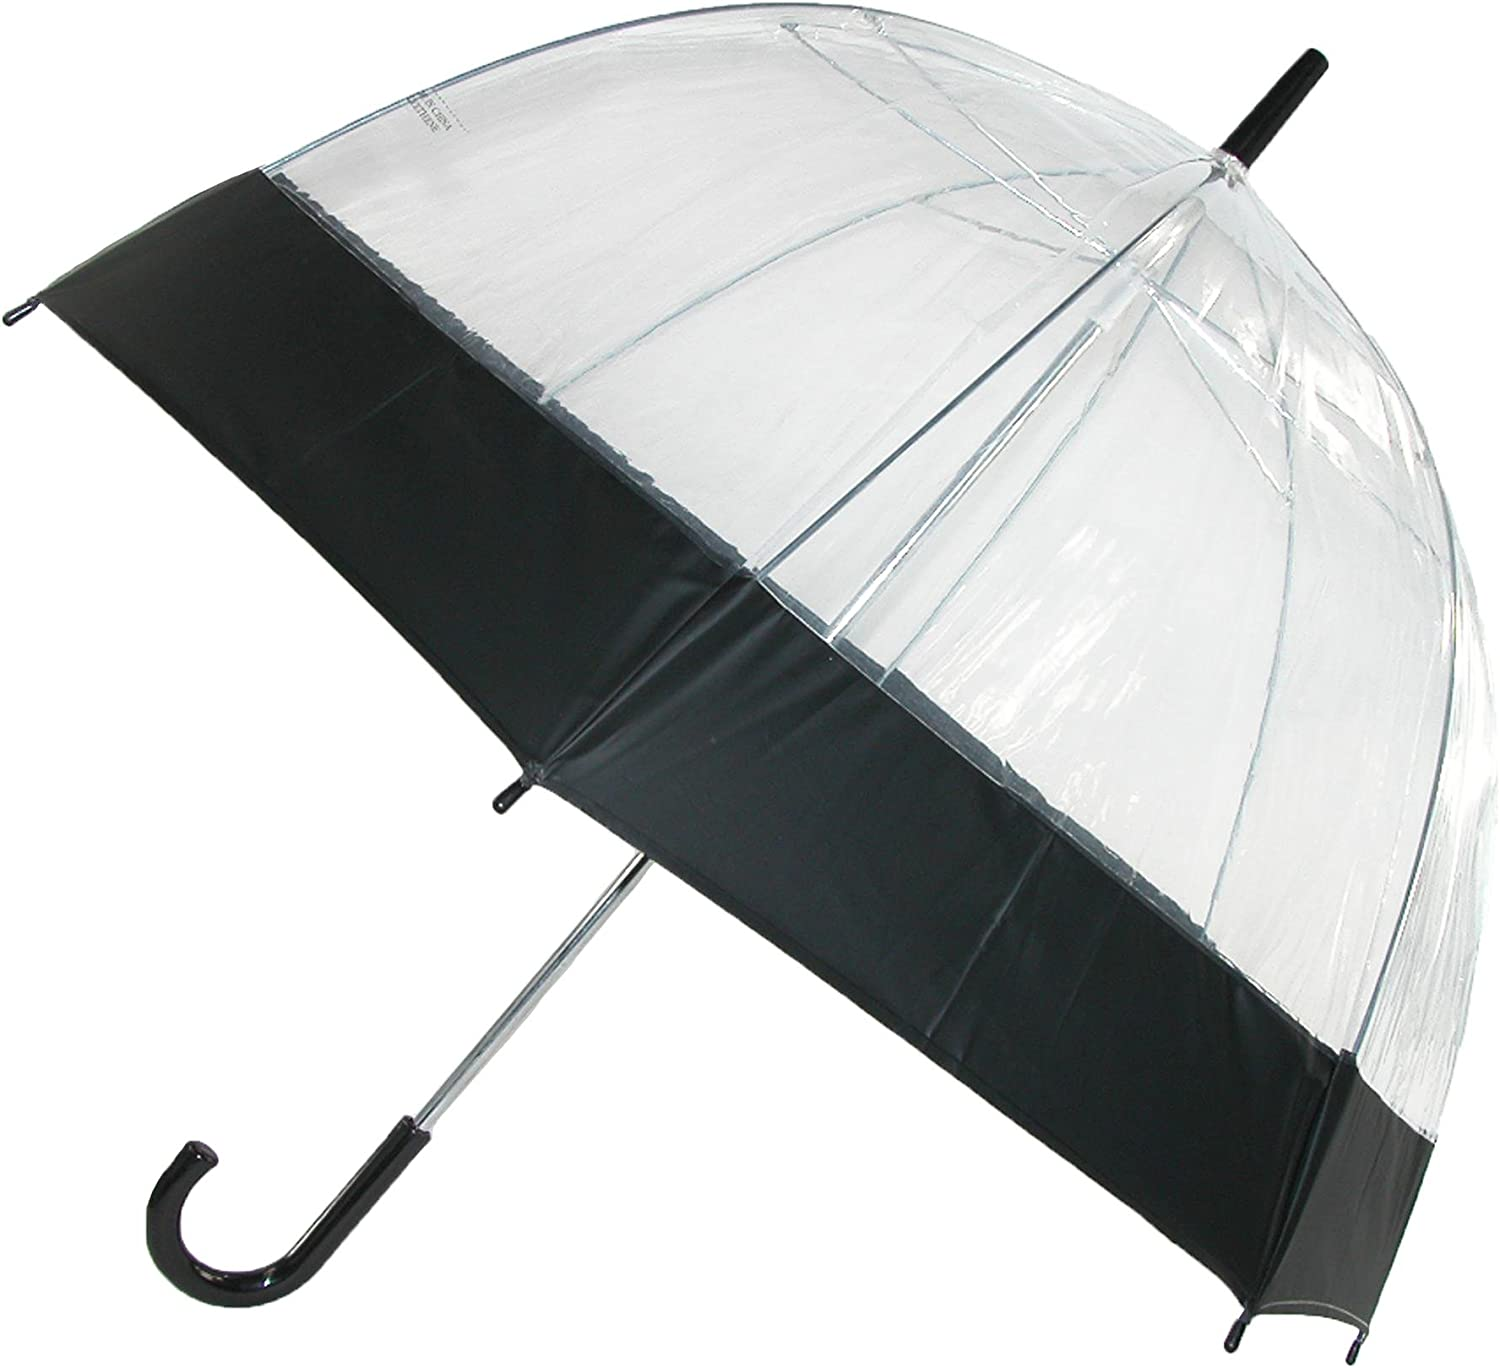 iRain Clear Bubble Dome with Colored Trim Hook Handle Umbrella, Black Trim